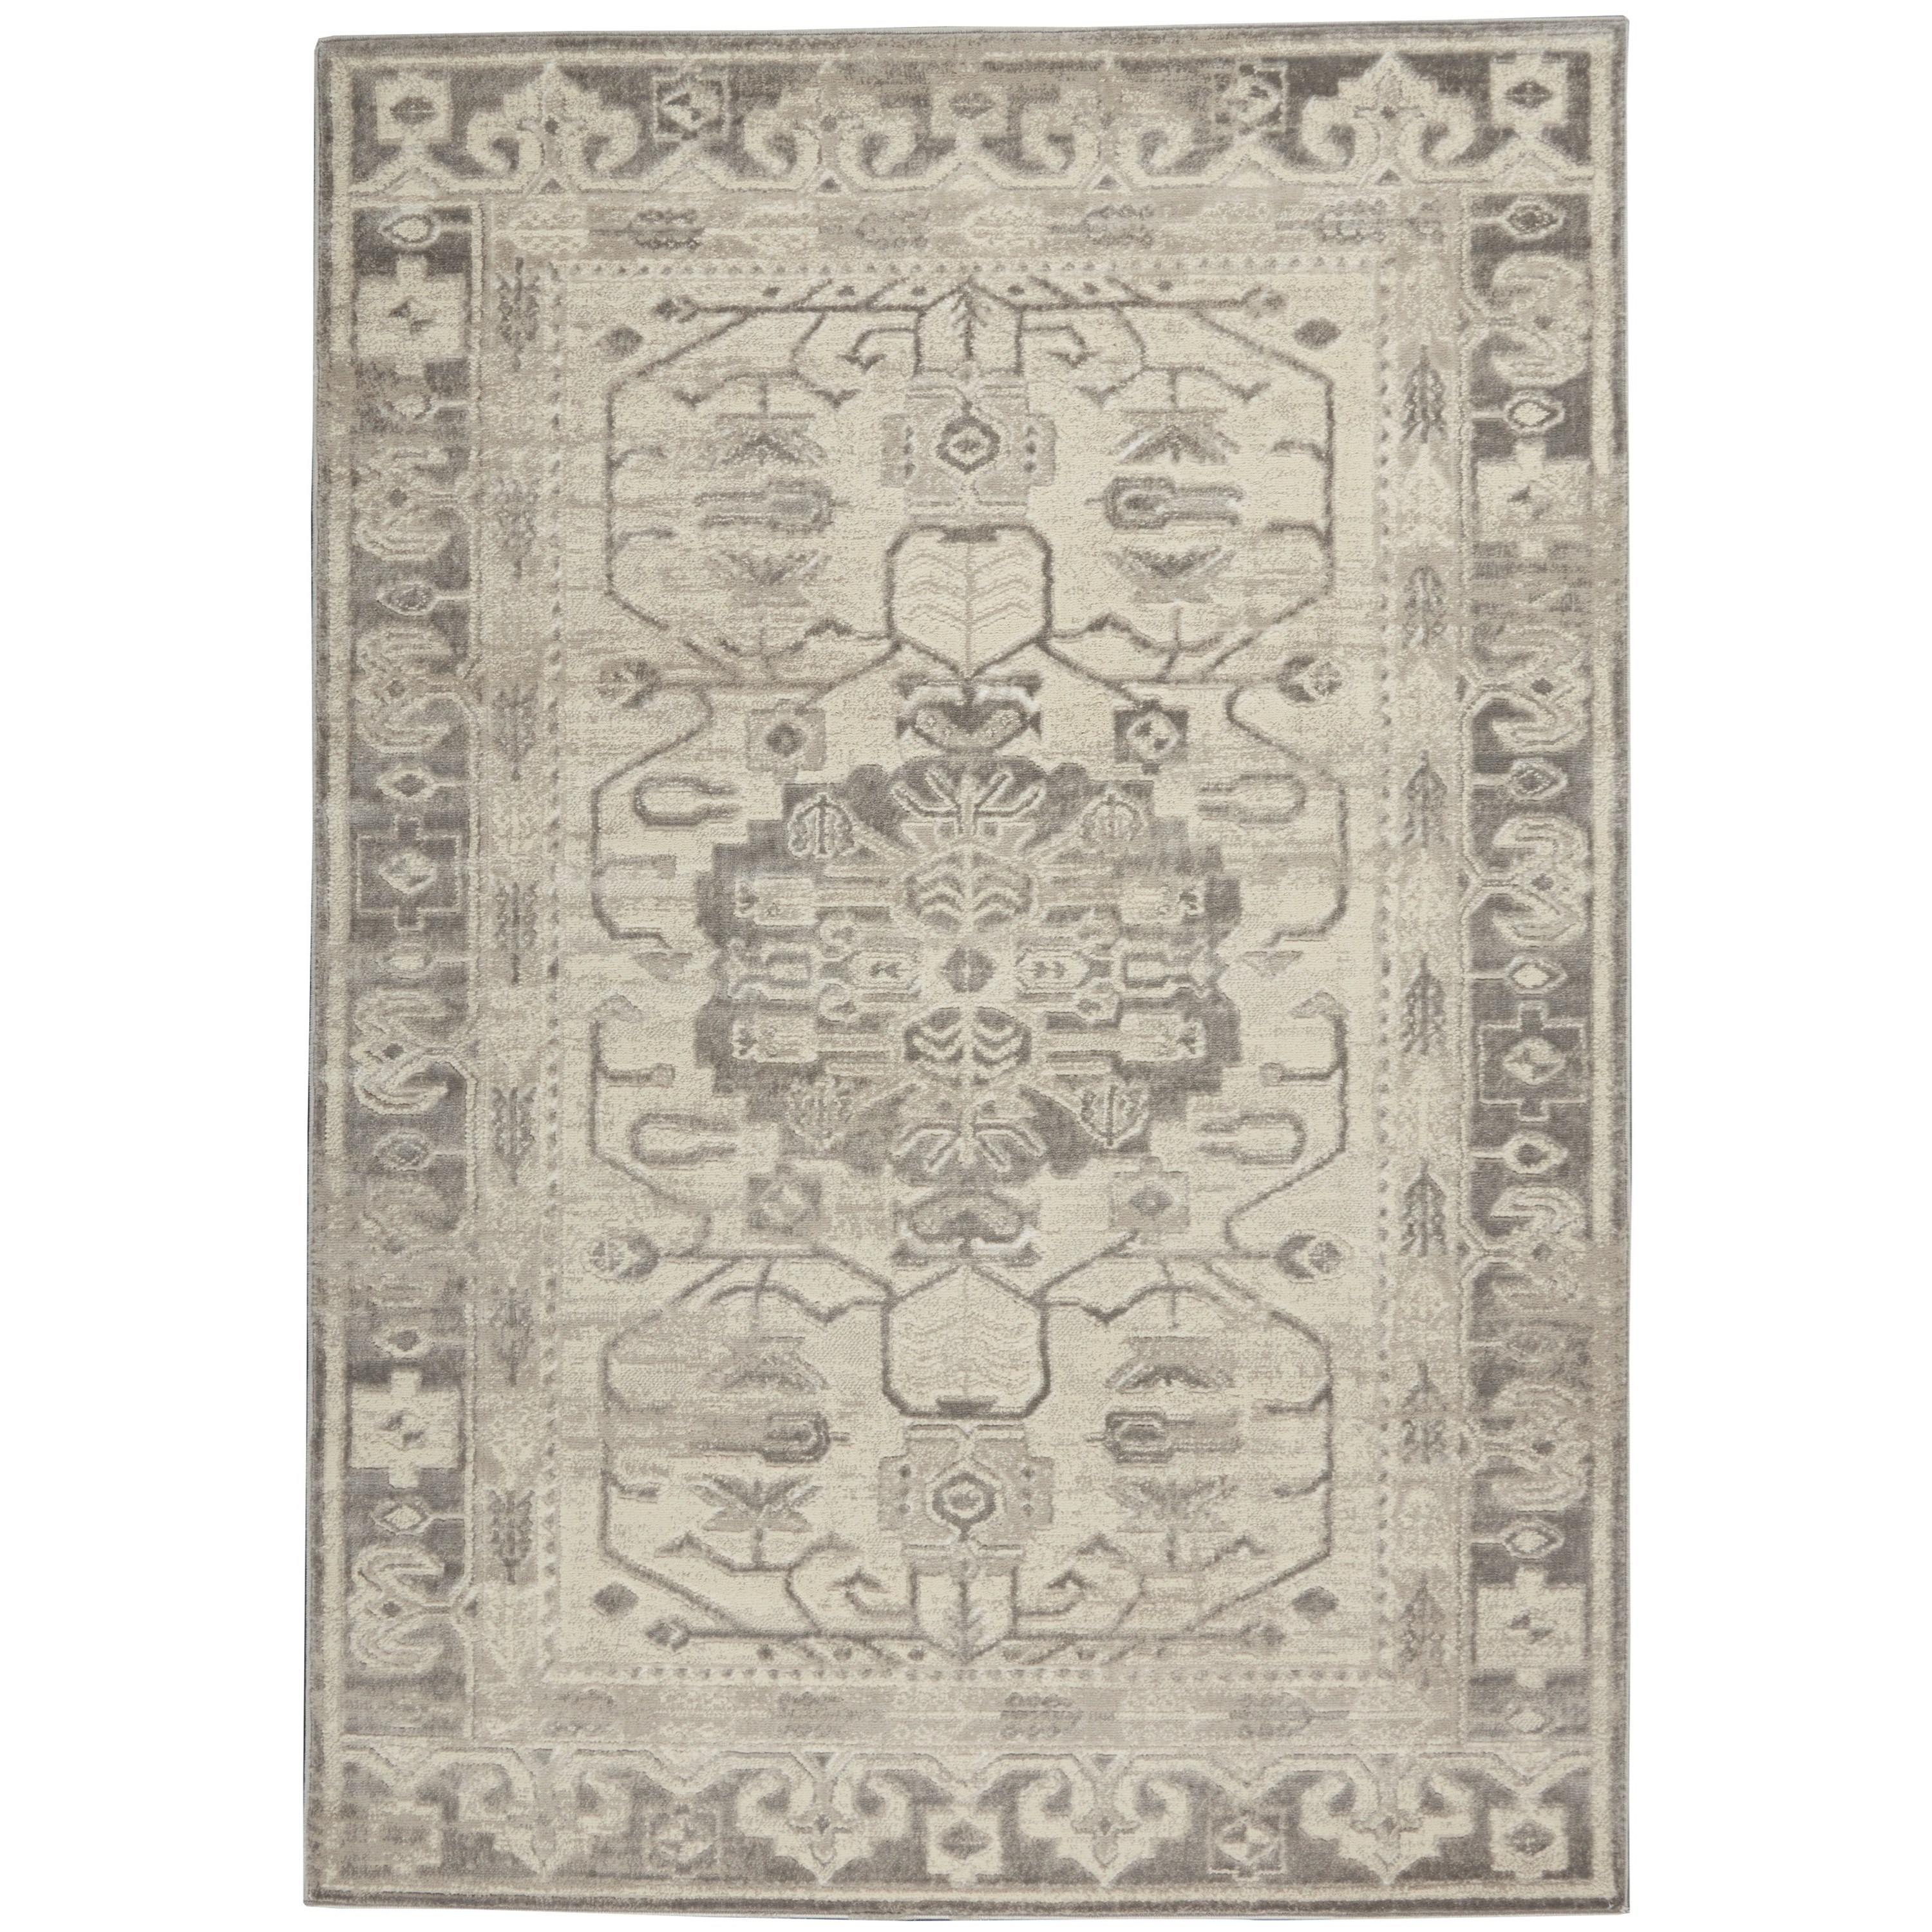 Cyrus 2020 5' x 7' Rug by Nourison at Story & Lee Furniture